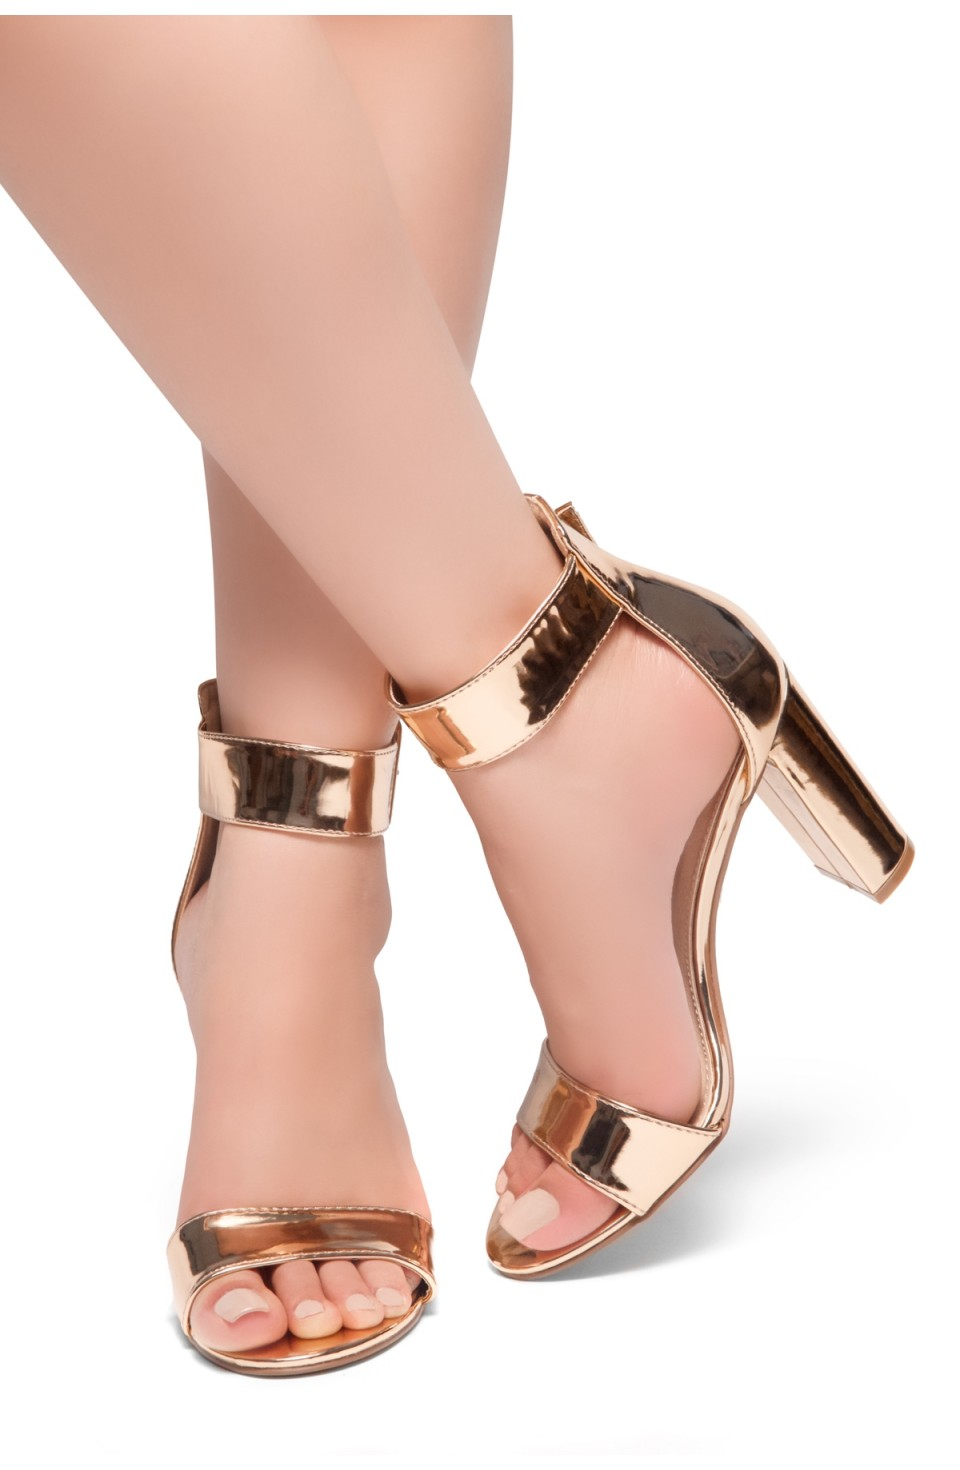 HerStyle NEEDED THIS-Open Toe Ankle Strap Chunky Heel Sandals (RoseGold)